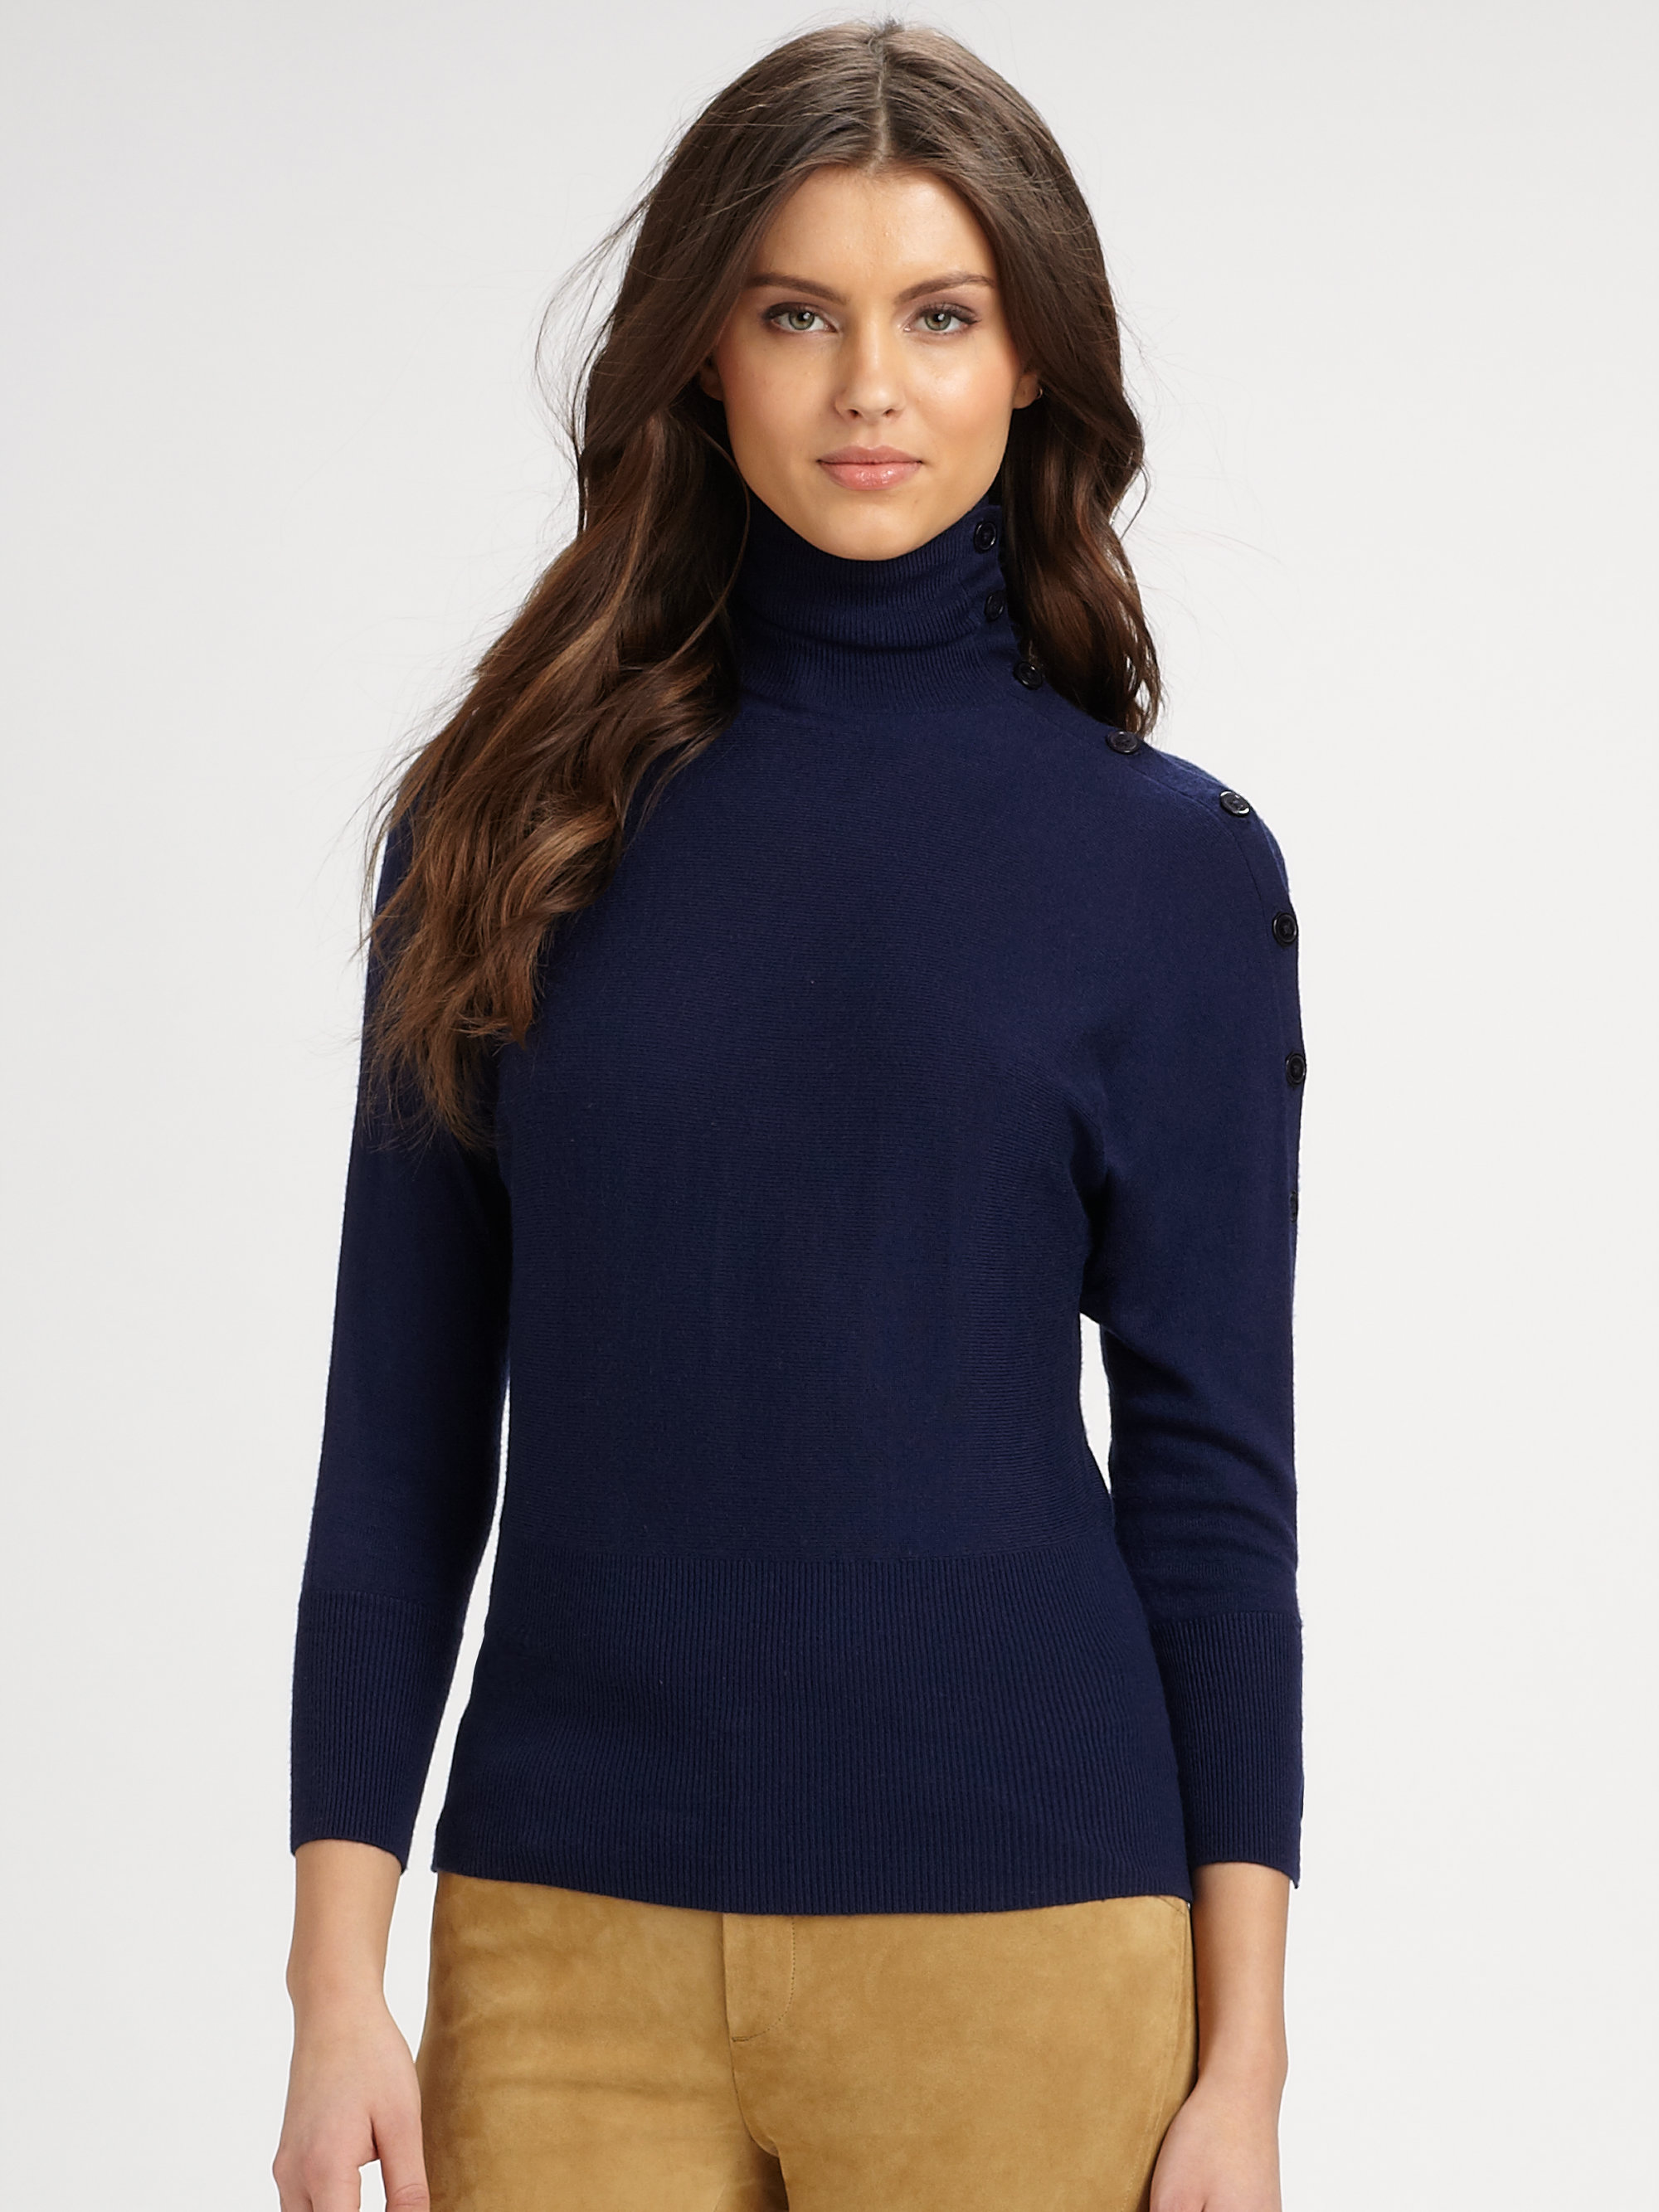 Ralph lauren blue label Turtleneck Sweater in Natural | Lyst